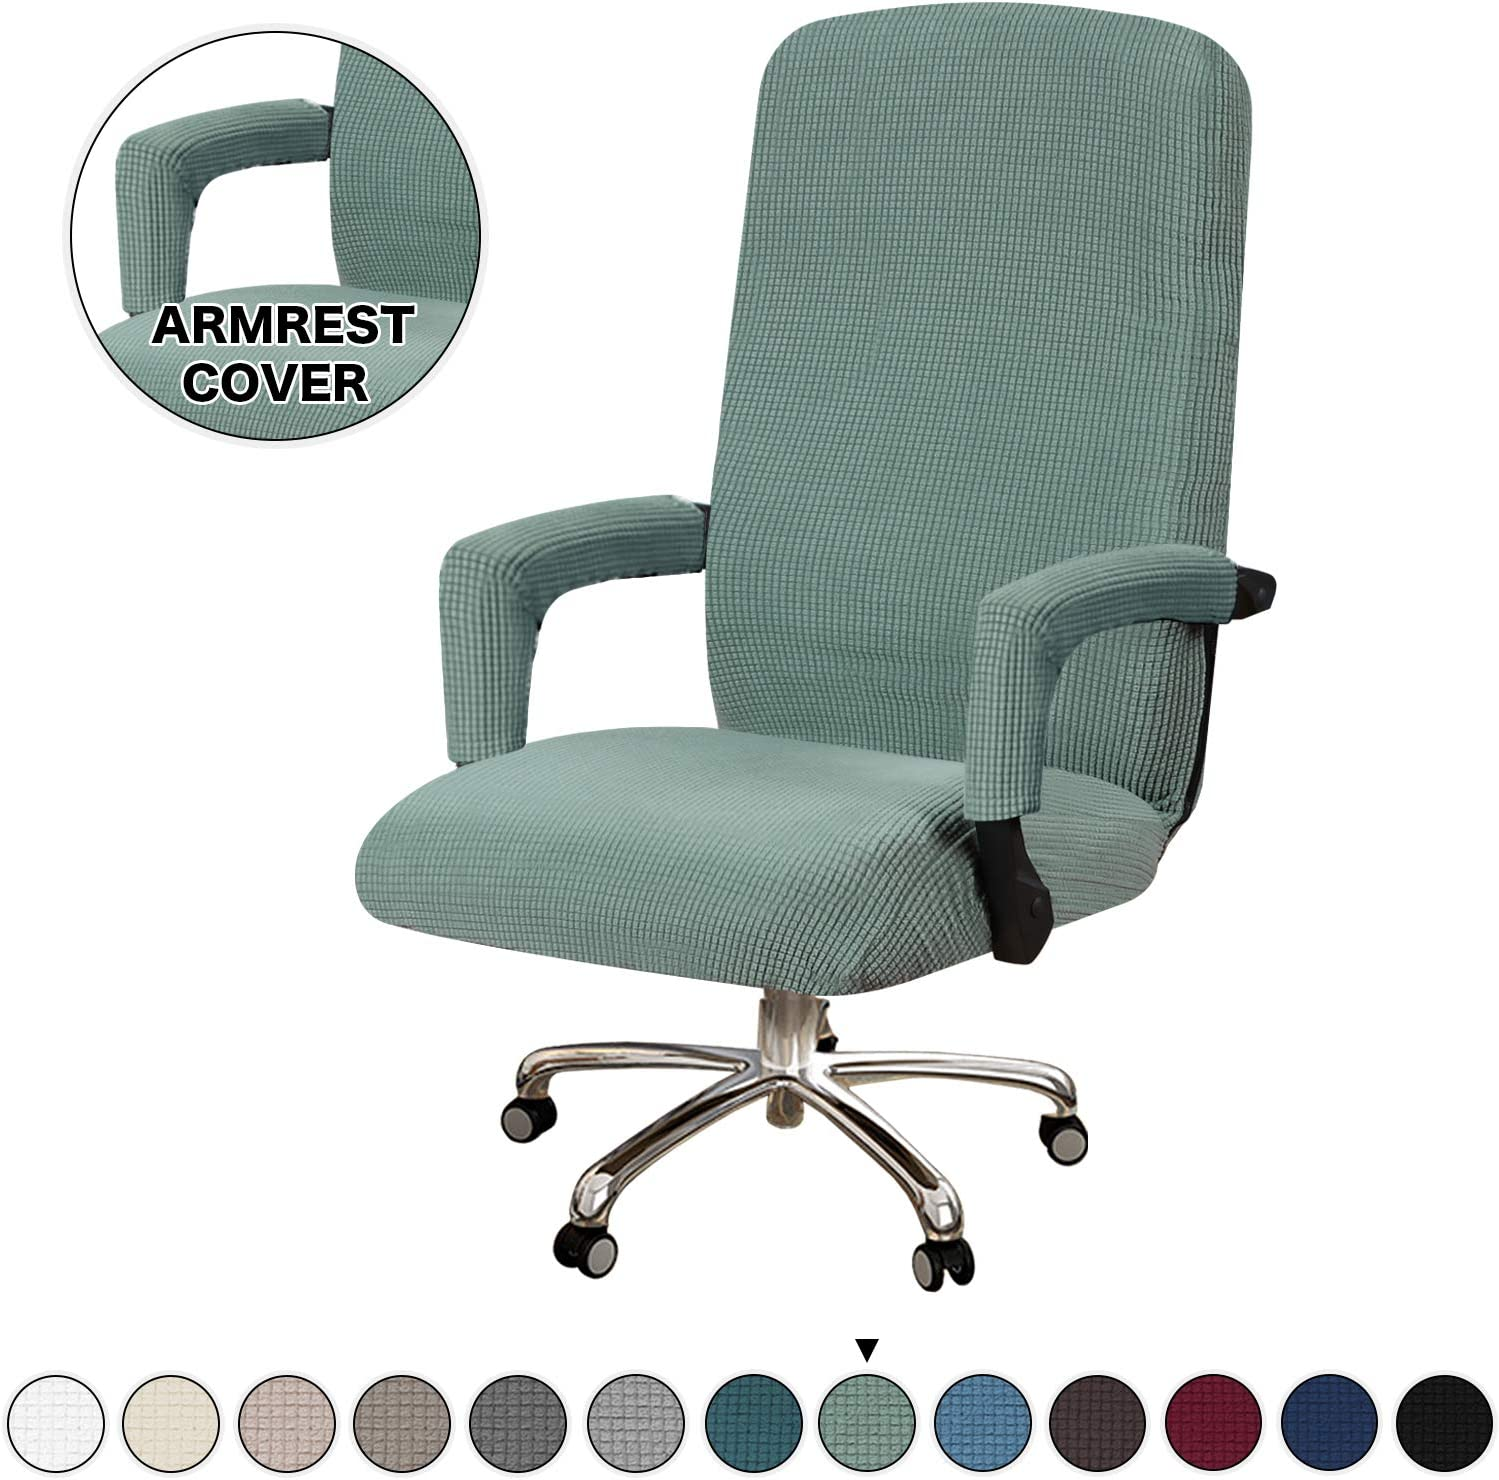 Turquoize Office Chair Cover Jacquard Office Computer Chair Covers Rotating Swivel Chair Cover with Armrest Covers Universal Boss Chair Cover Washable Chair Cover Protectors, Large, Dark Cyan